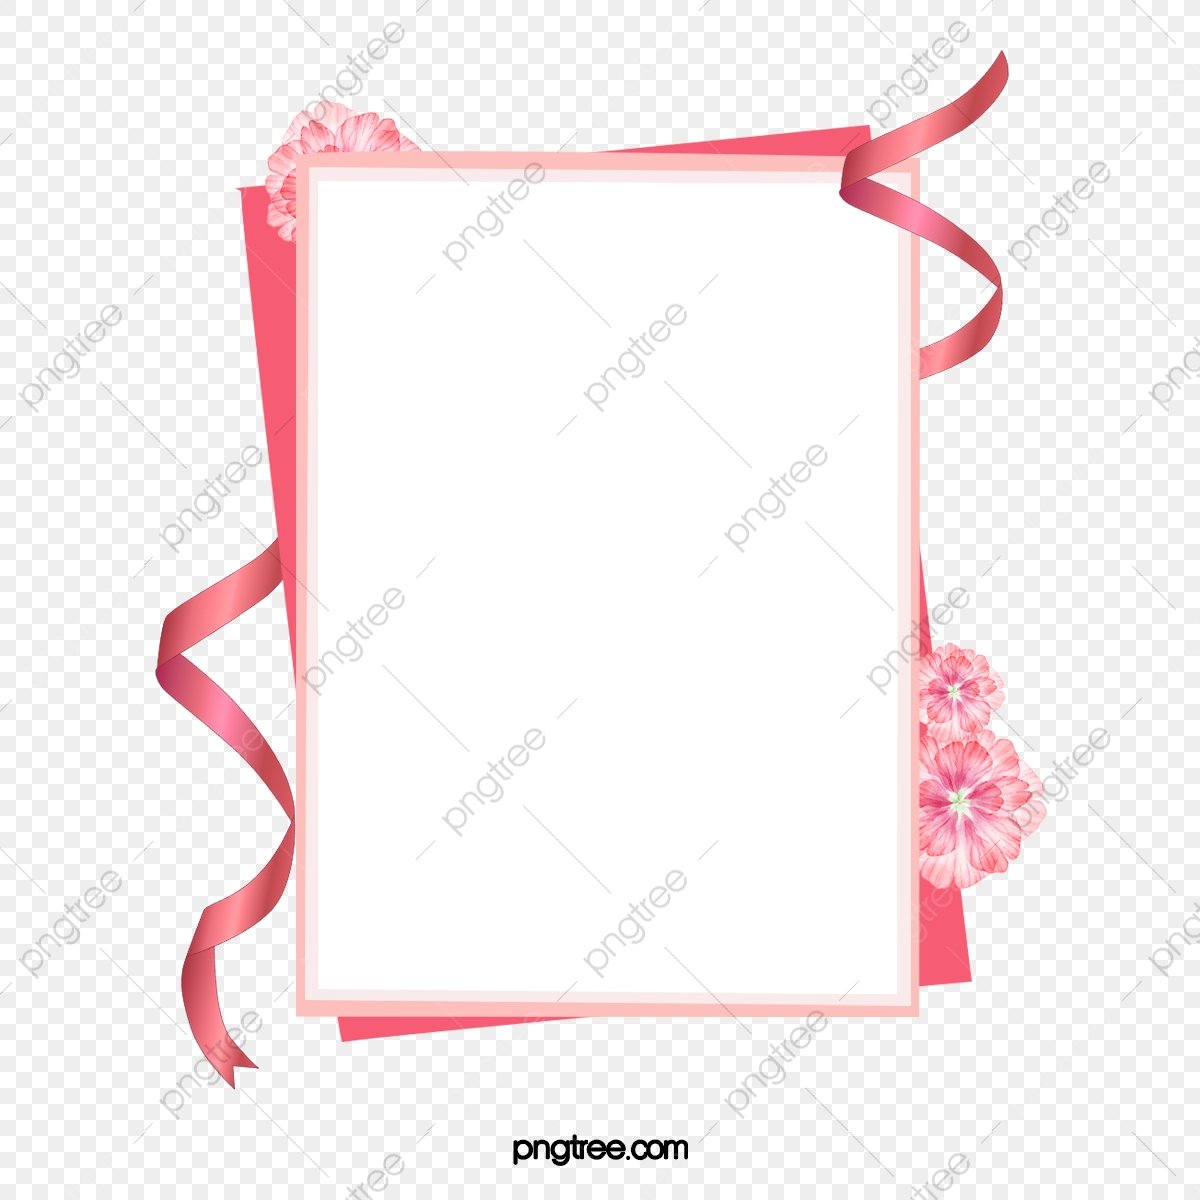 Pink Ribbon Border, Ribbon Clipart, Pink, Ribbon PNG.